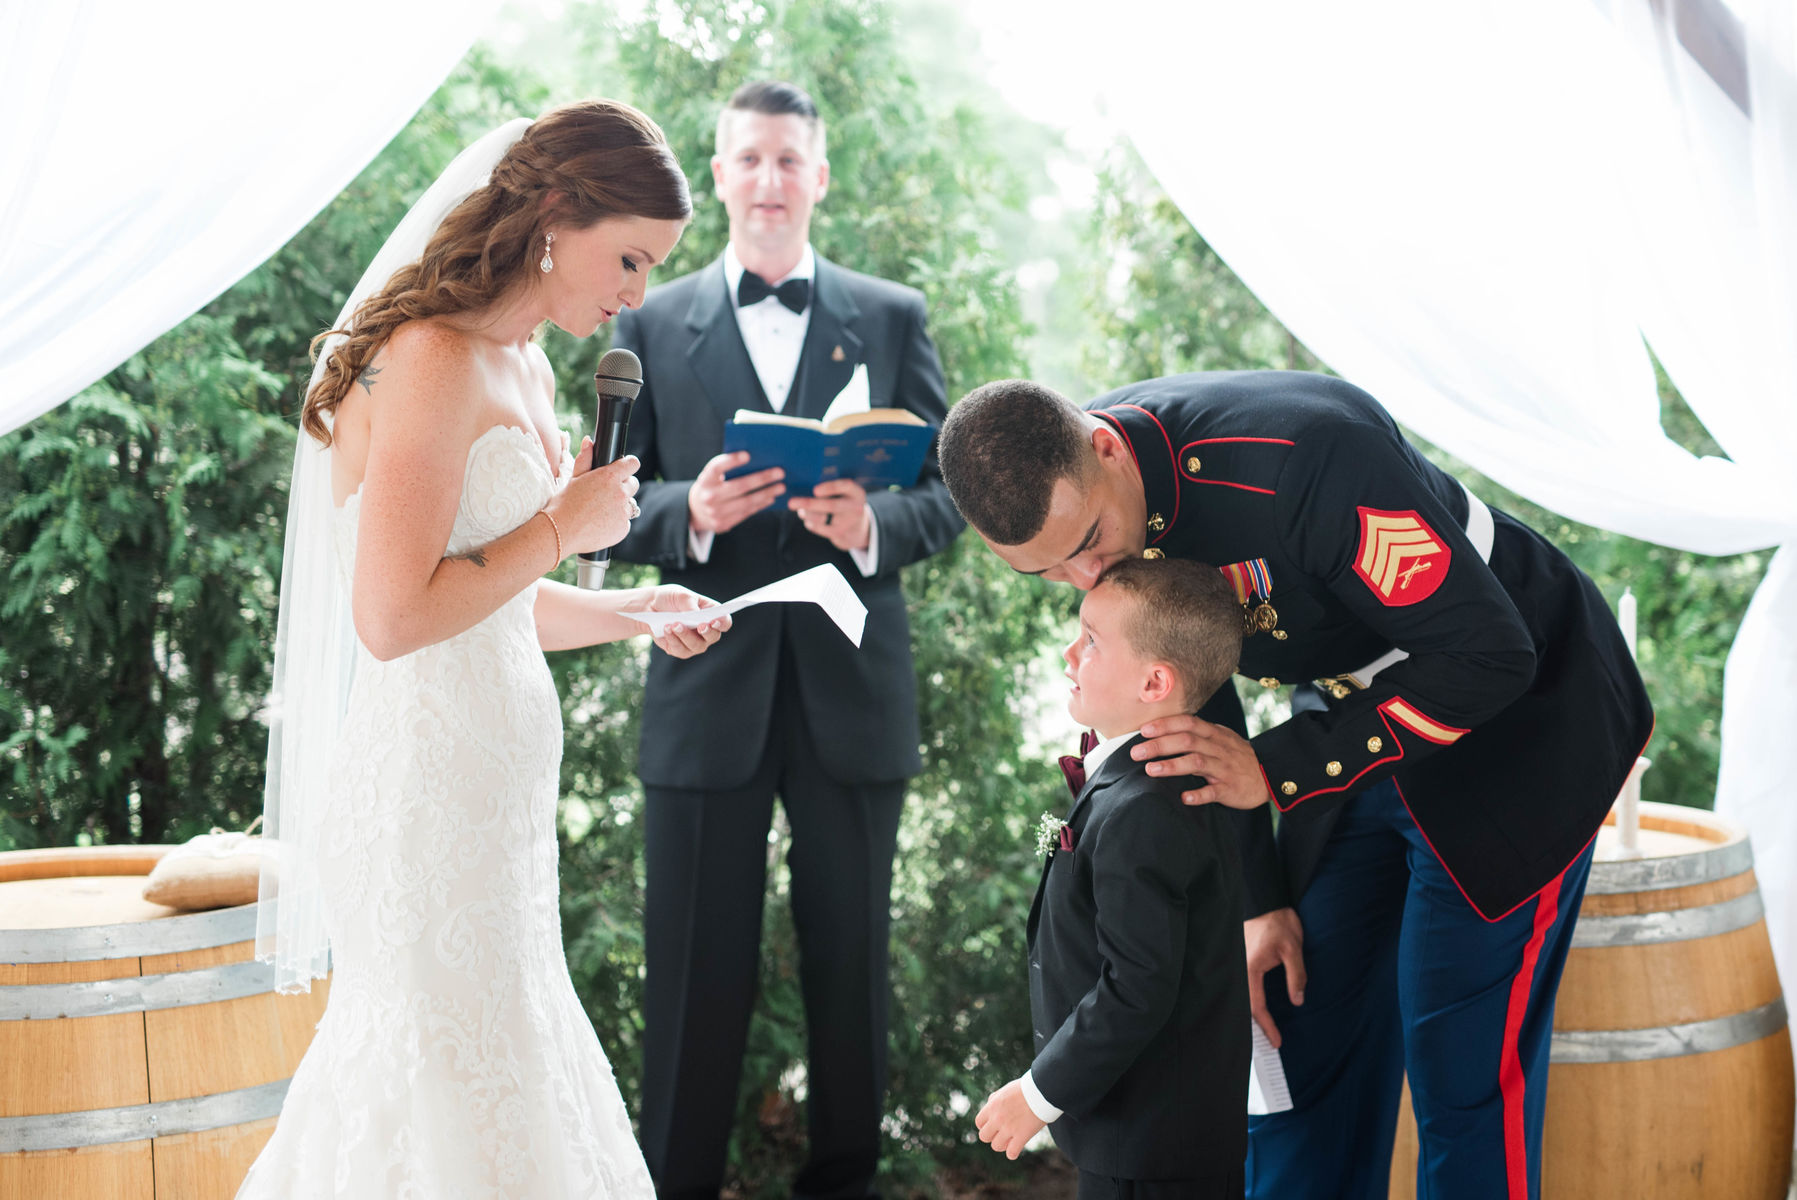 emotional wedding moment goes viral